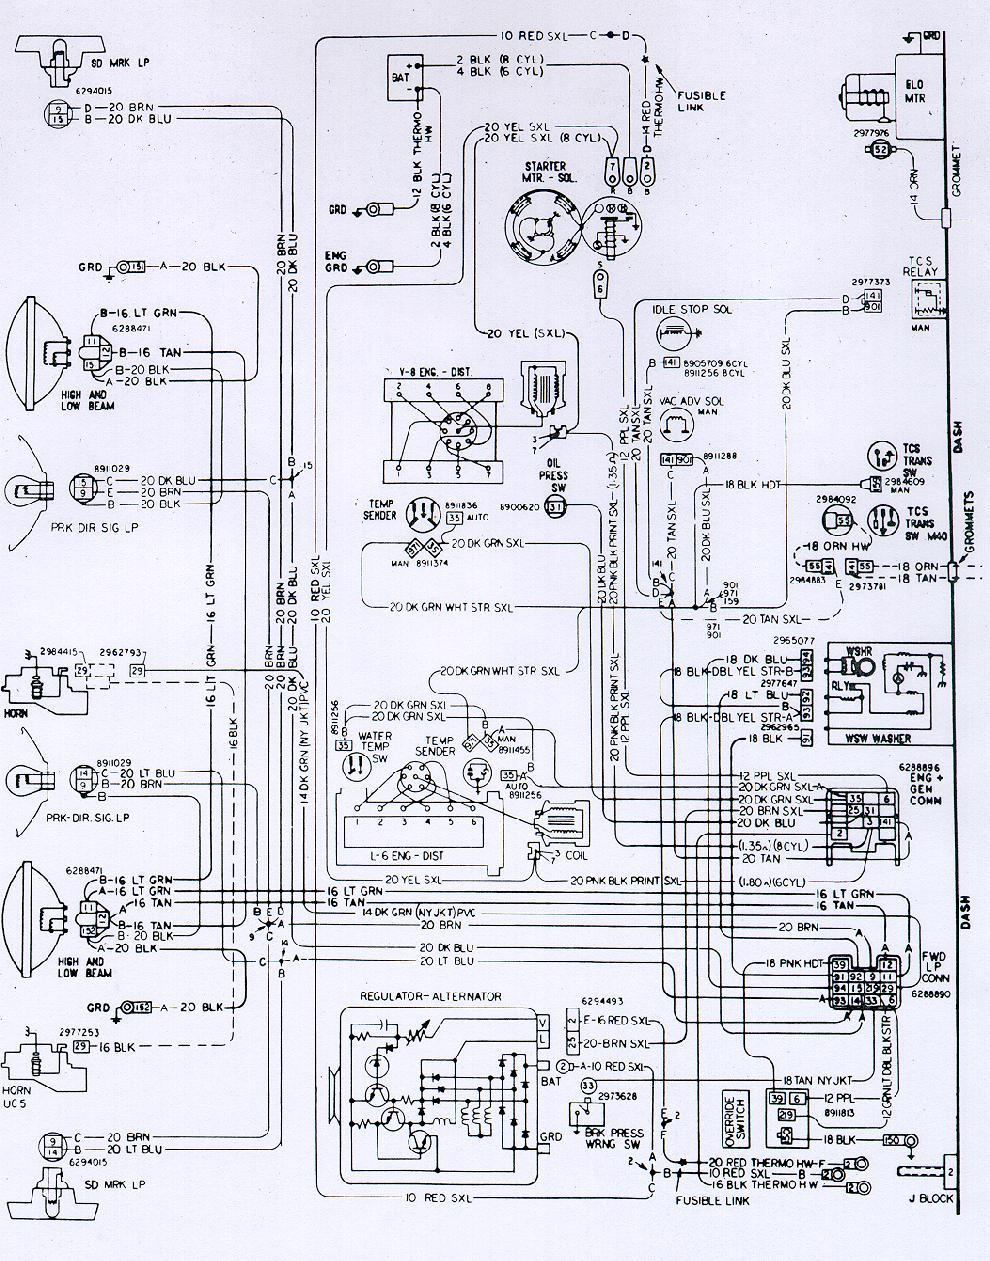 hight resolution of 67 camaro fuse box diagram wiring schematic diagram rh theodocle fion com 85 pontiac fiero fuse